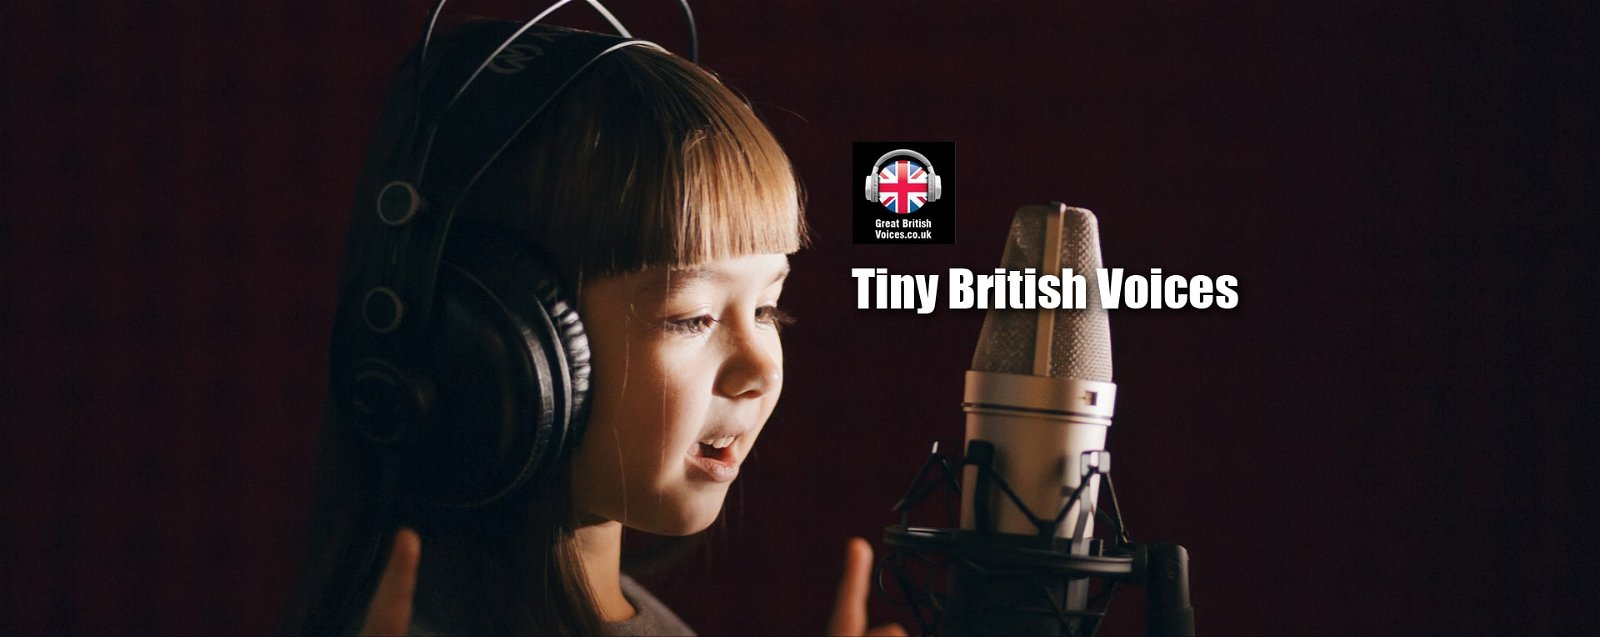 Tiny British Childrens Voices at Great British Voices-min